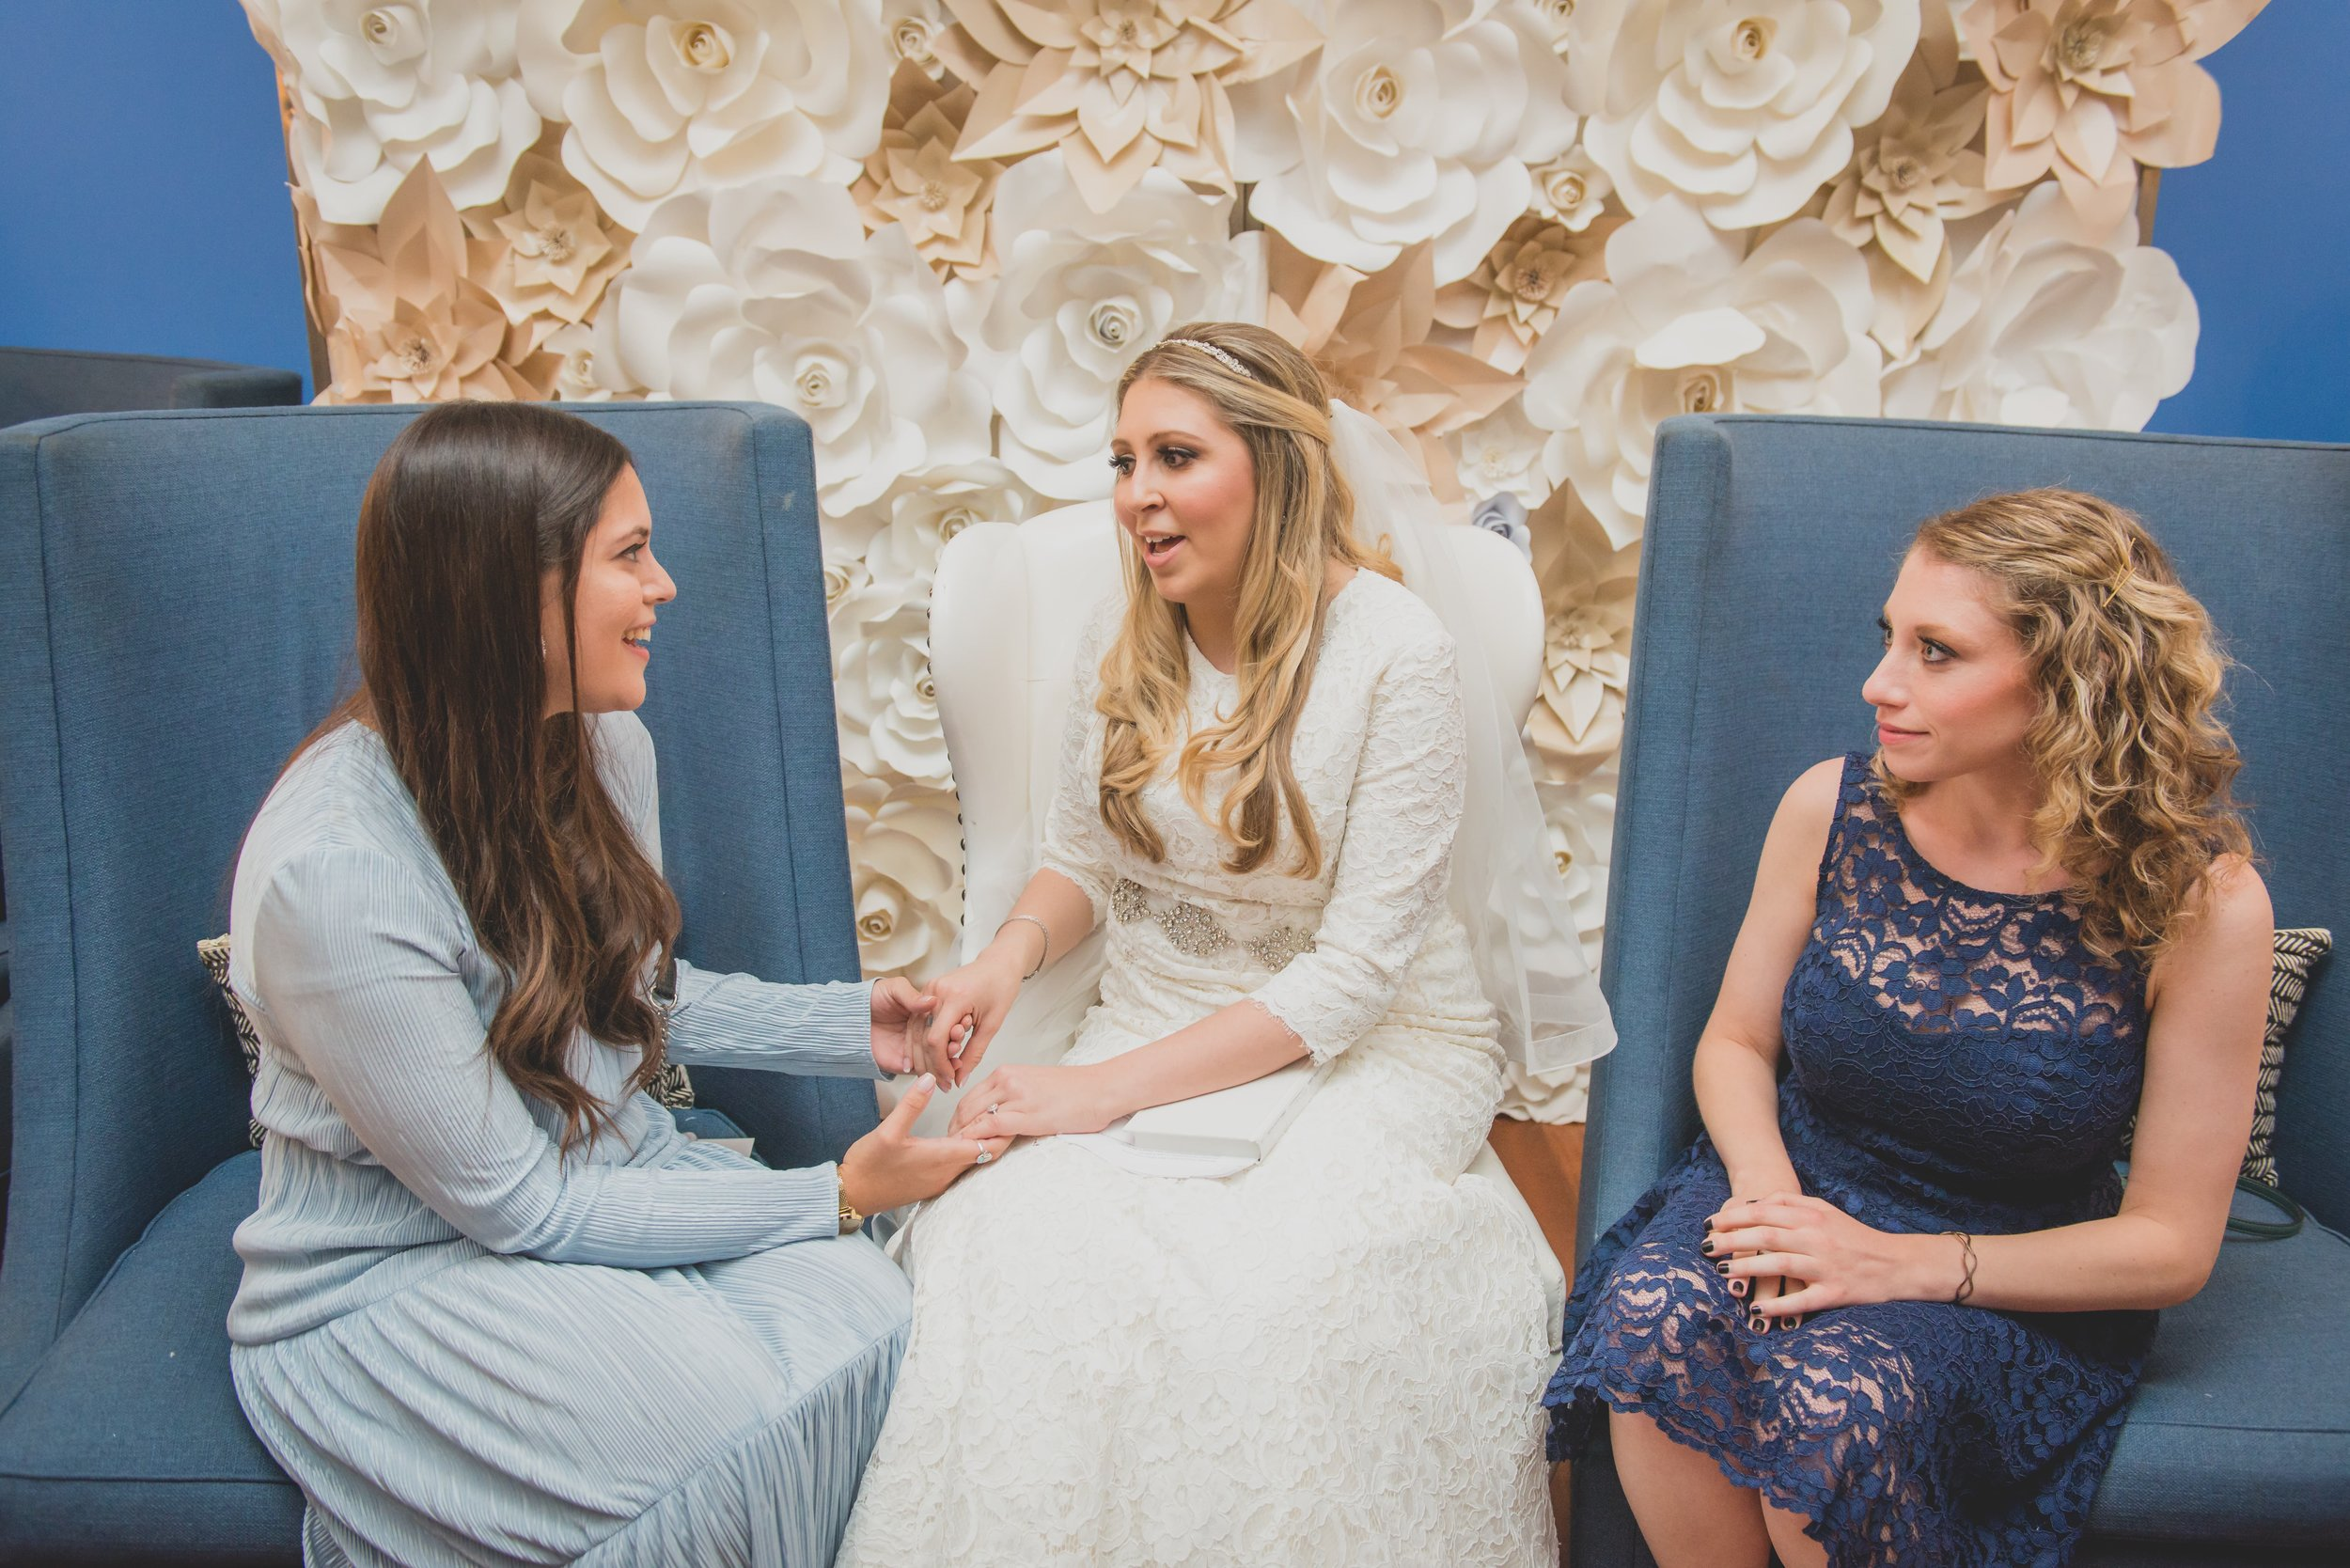 A bride greeting her guests in a lounge reception area.